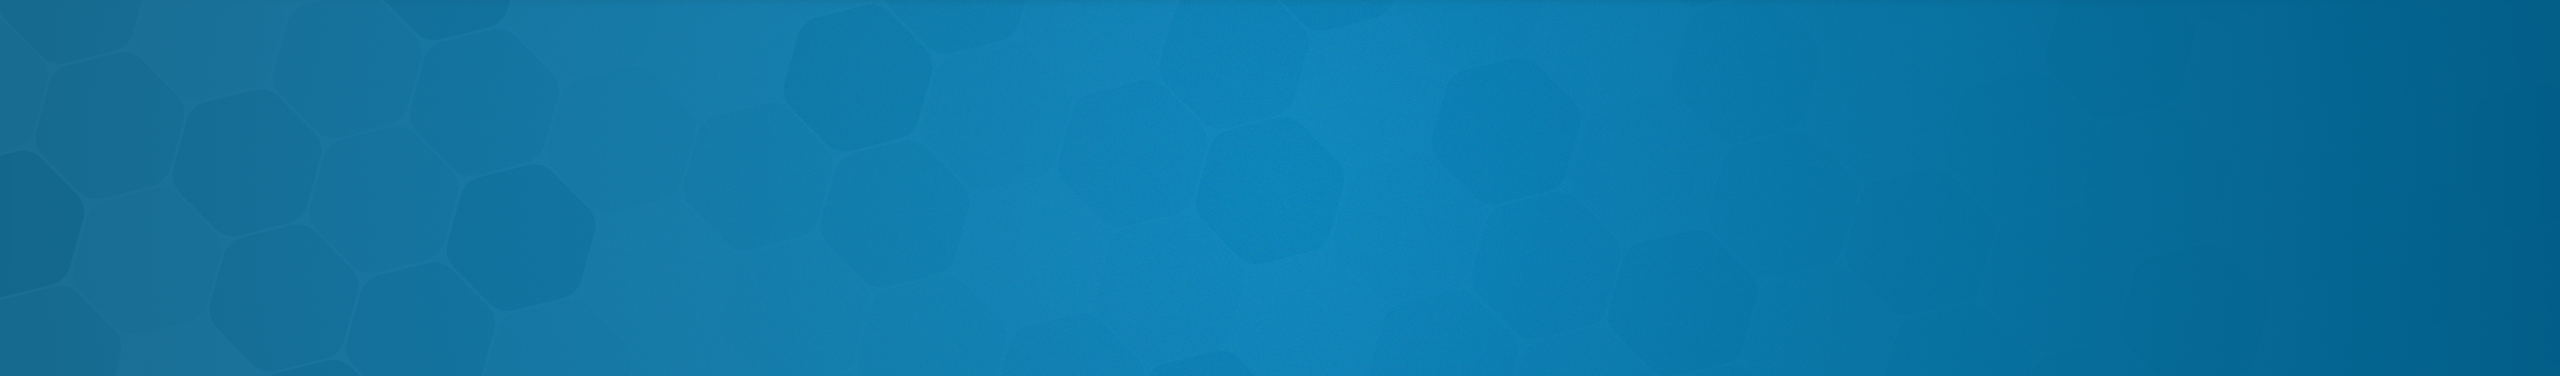 Blue-Footer-1.png